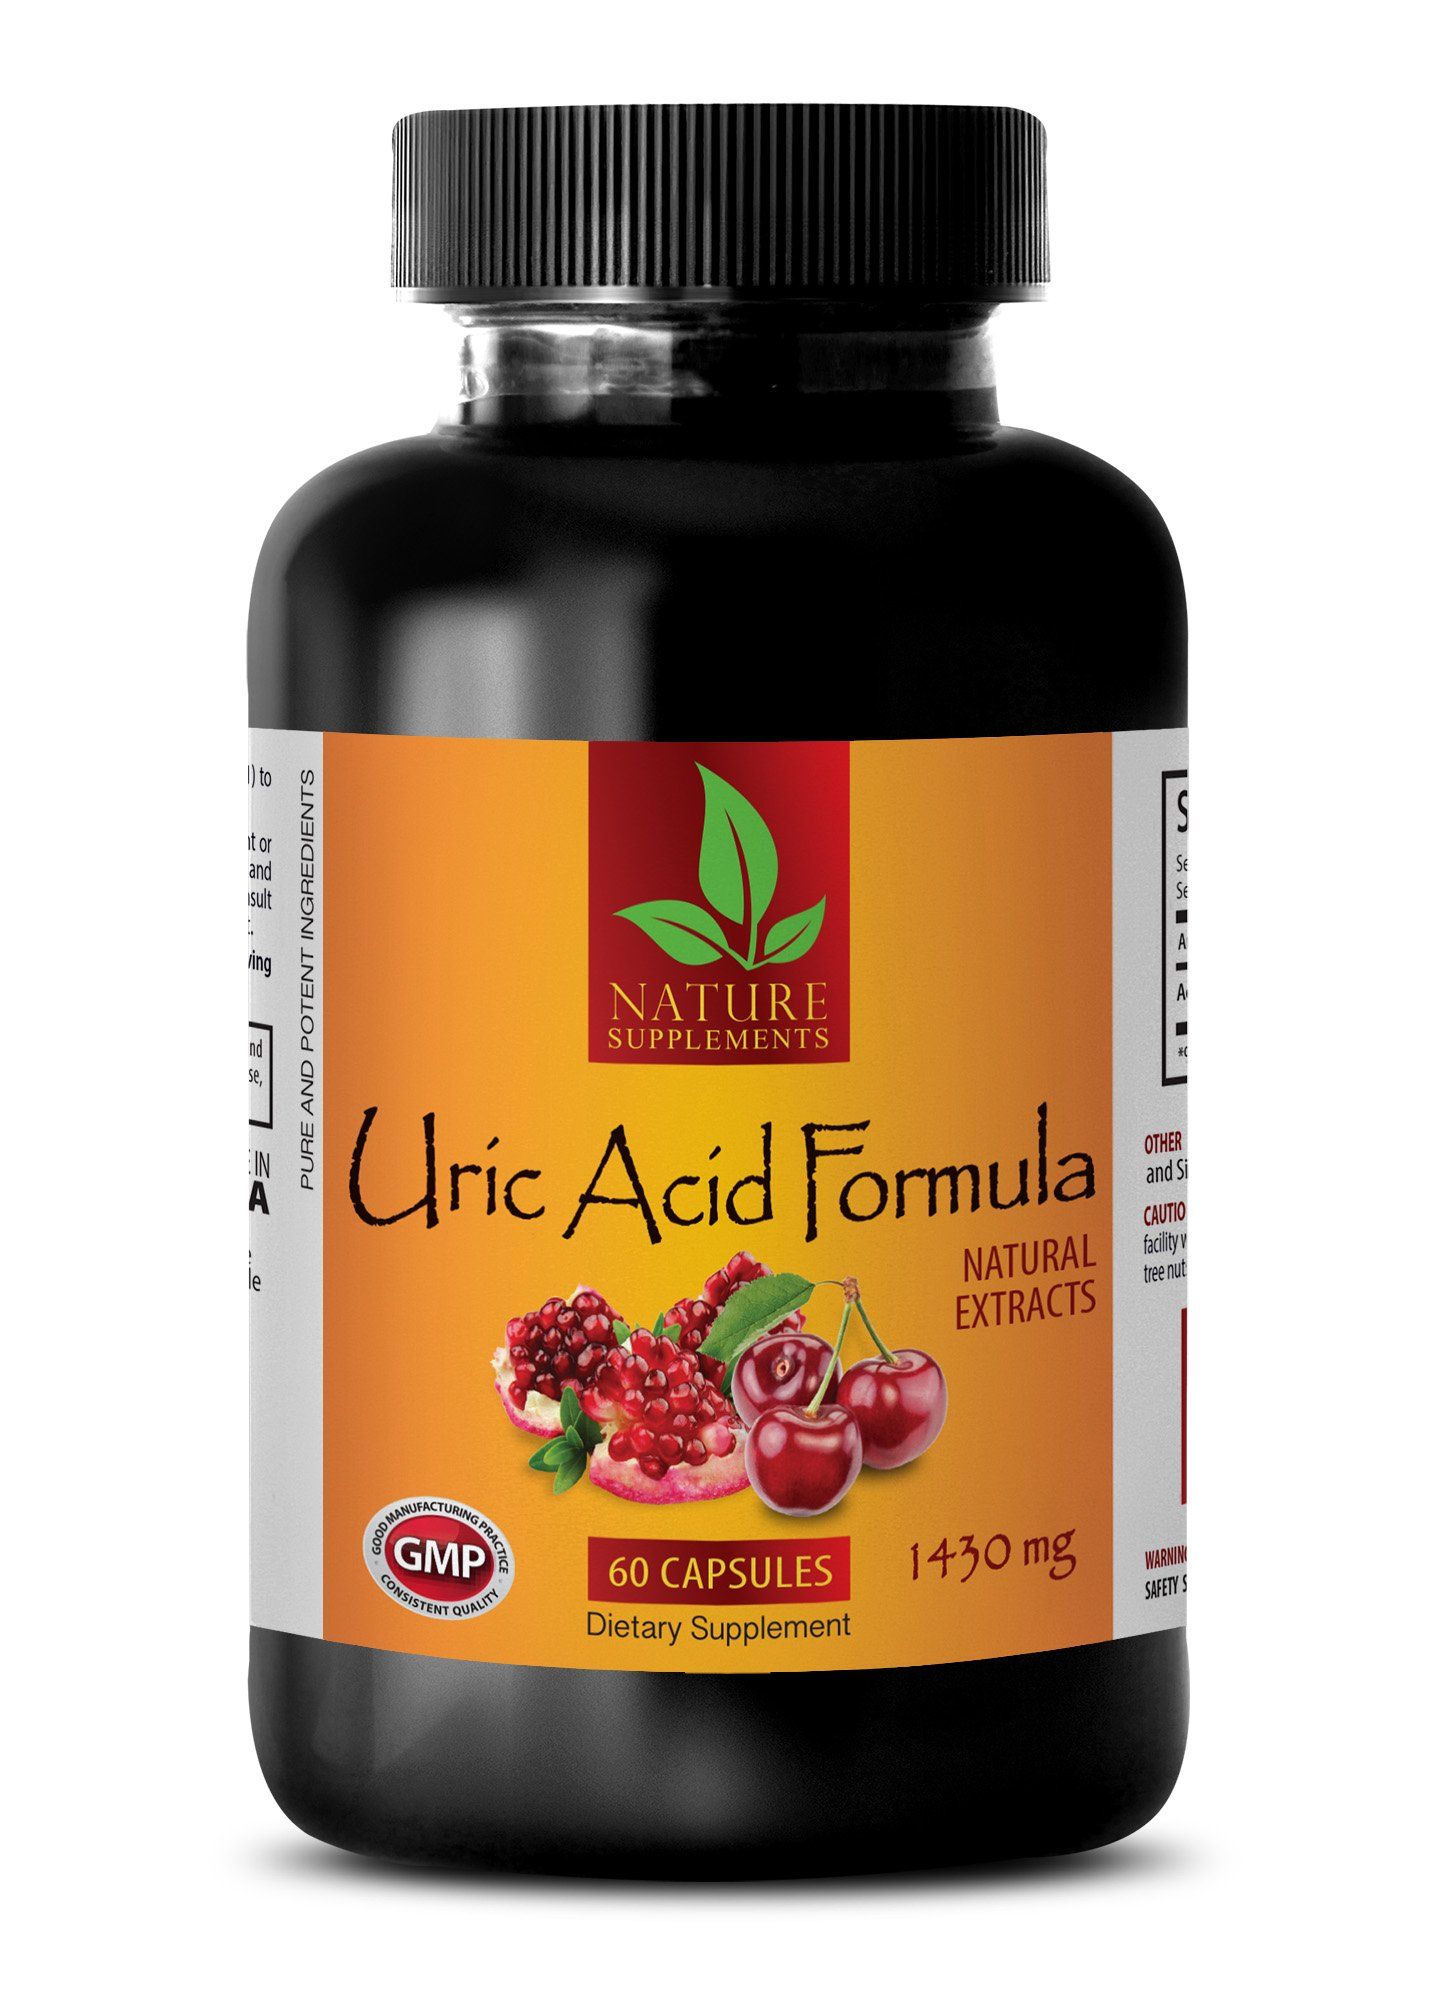 antioxidant Extreme - URIC Acid Formula - Natural EXTRACTS - Urinary Flush and Support with Cranberry - 1 Bottle (60 Capsules)